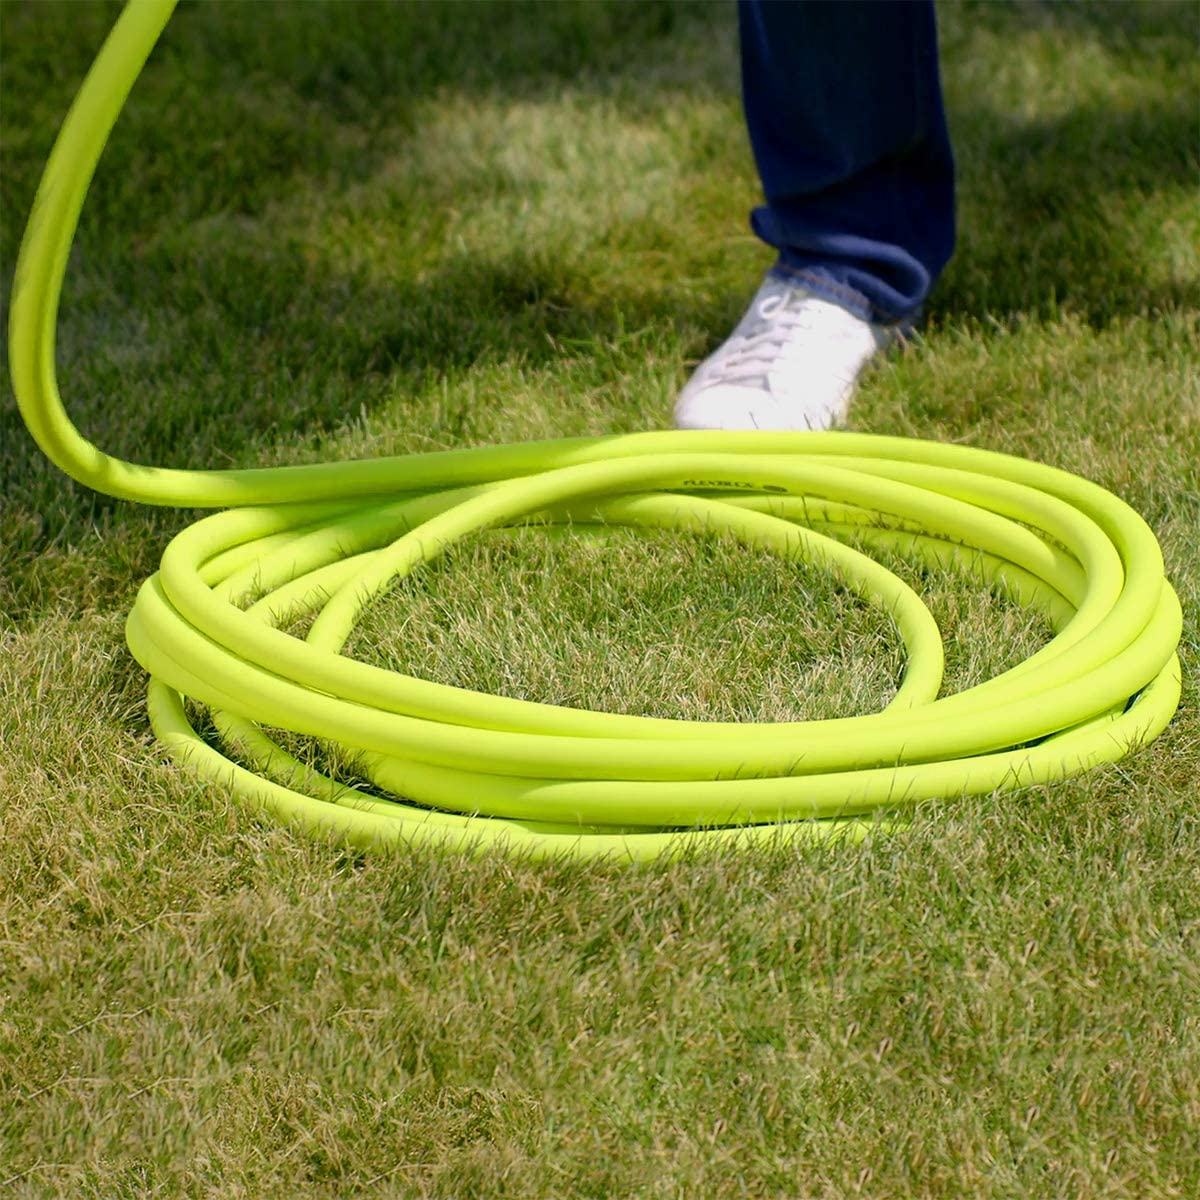 Garden Hose, 5/8 in. x 50 ft., Lightweight, Drinking Water Safe - HFZG550YW-E